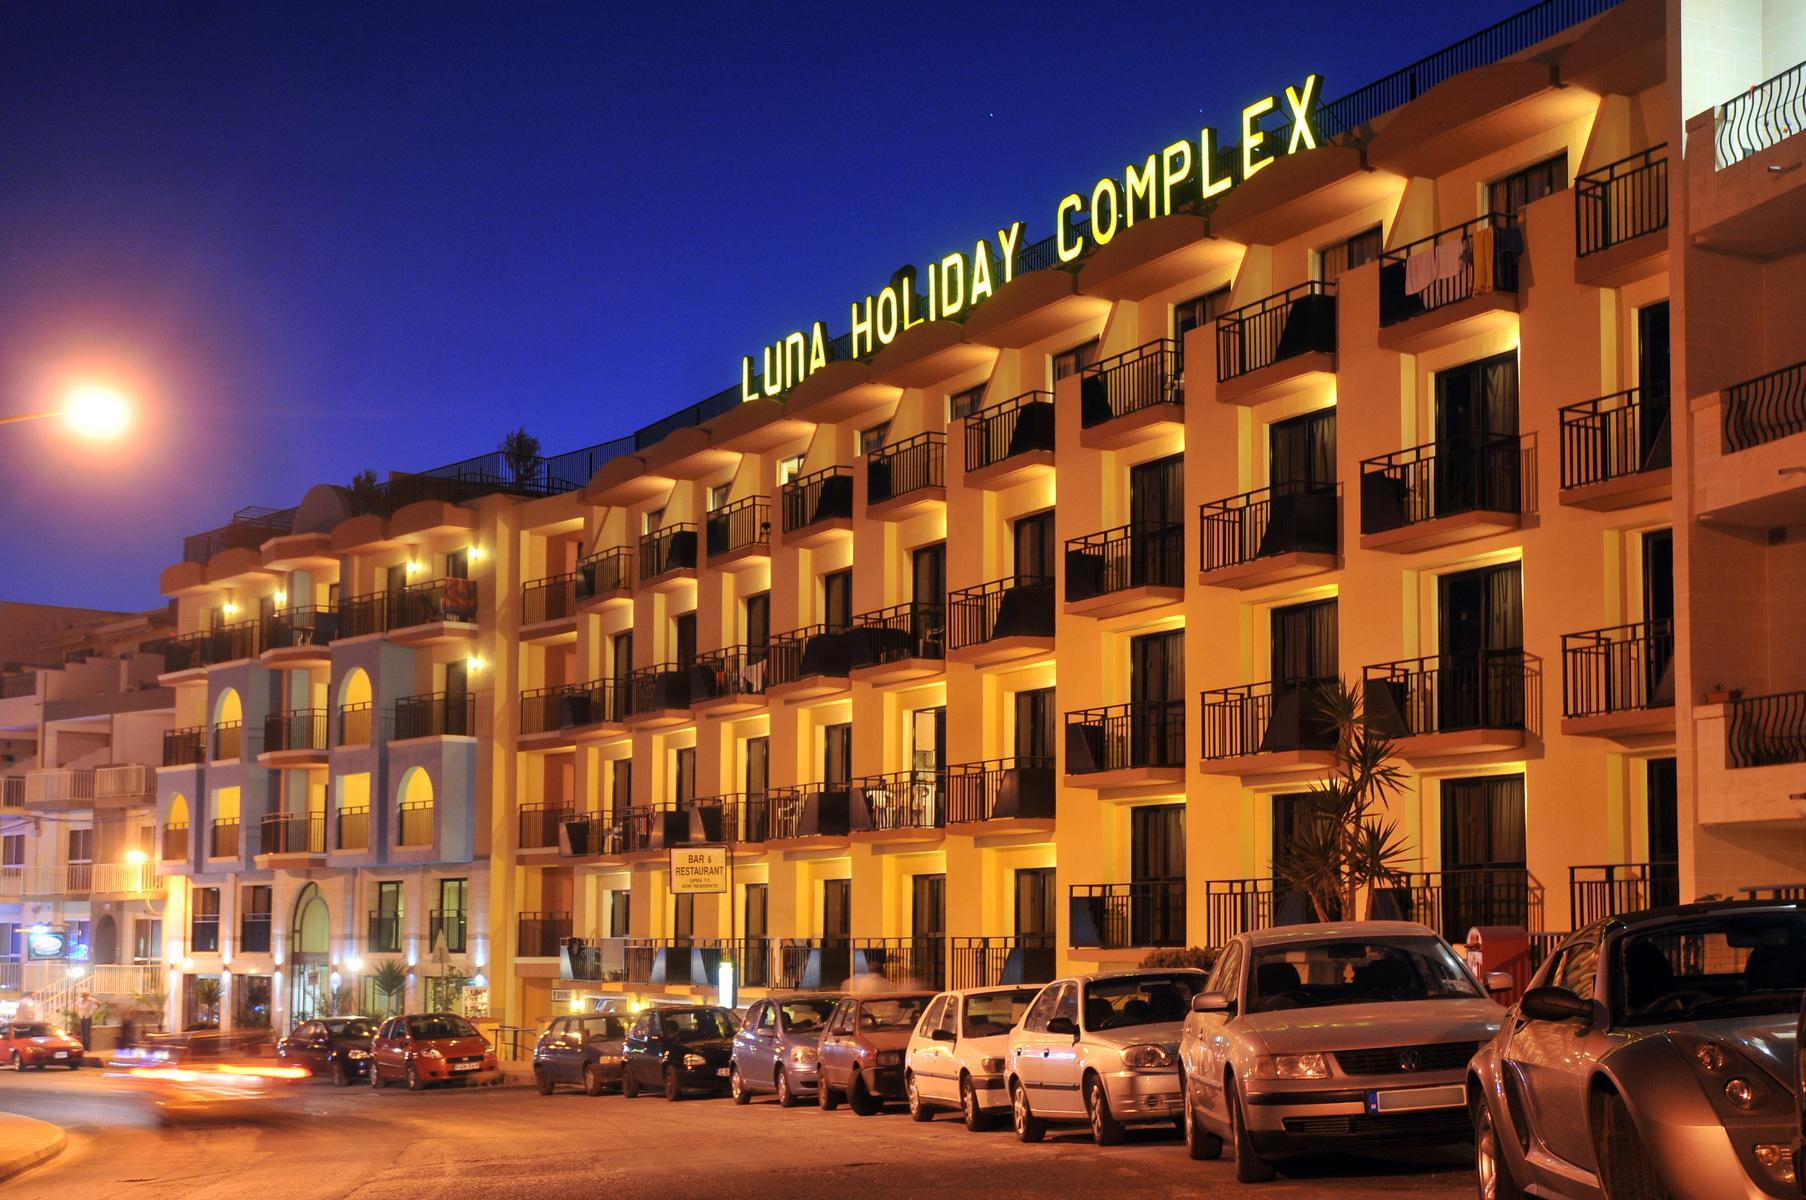 Luna Holiday Complex in Mellieha, Malta